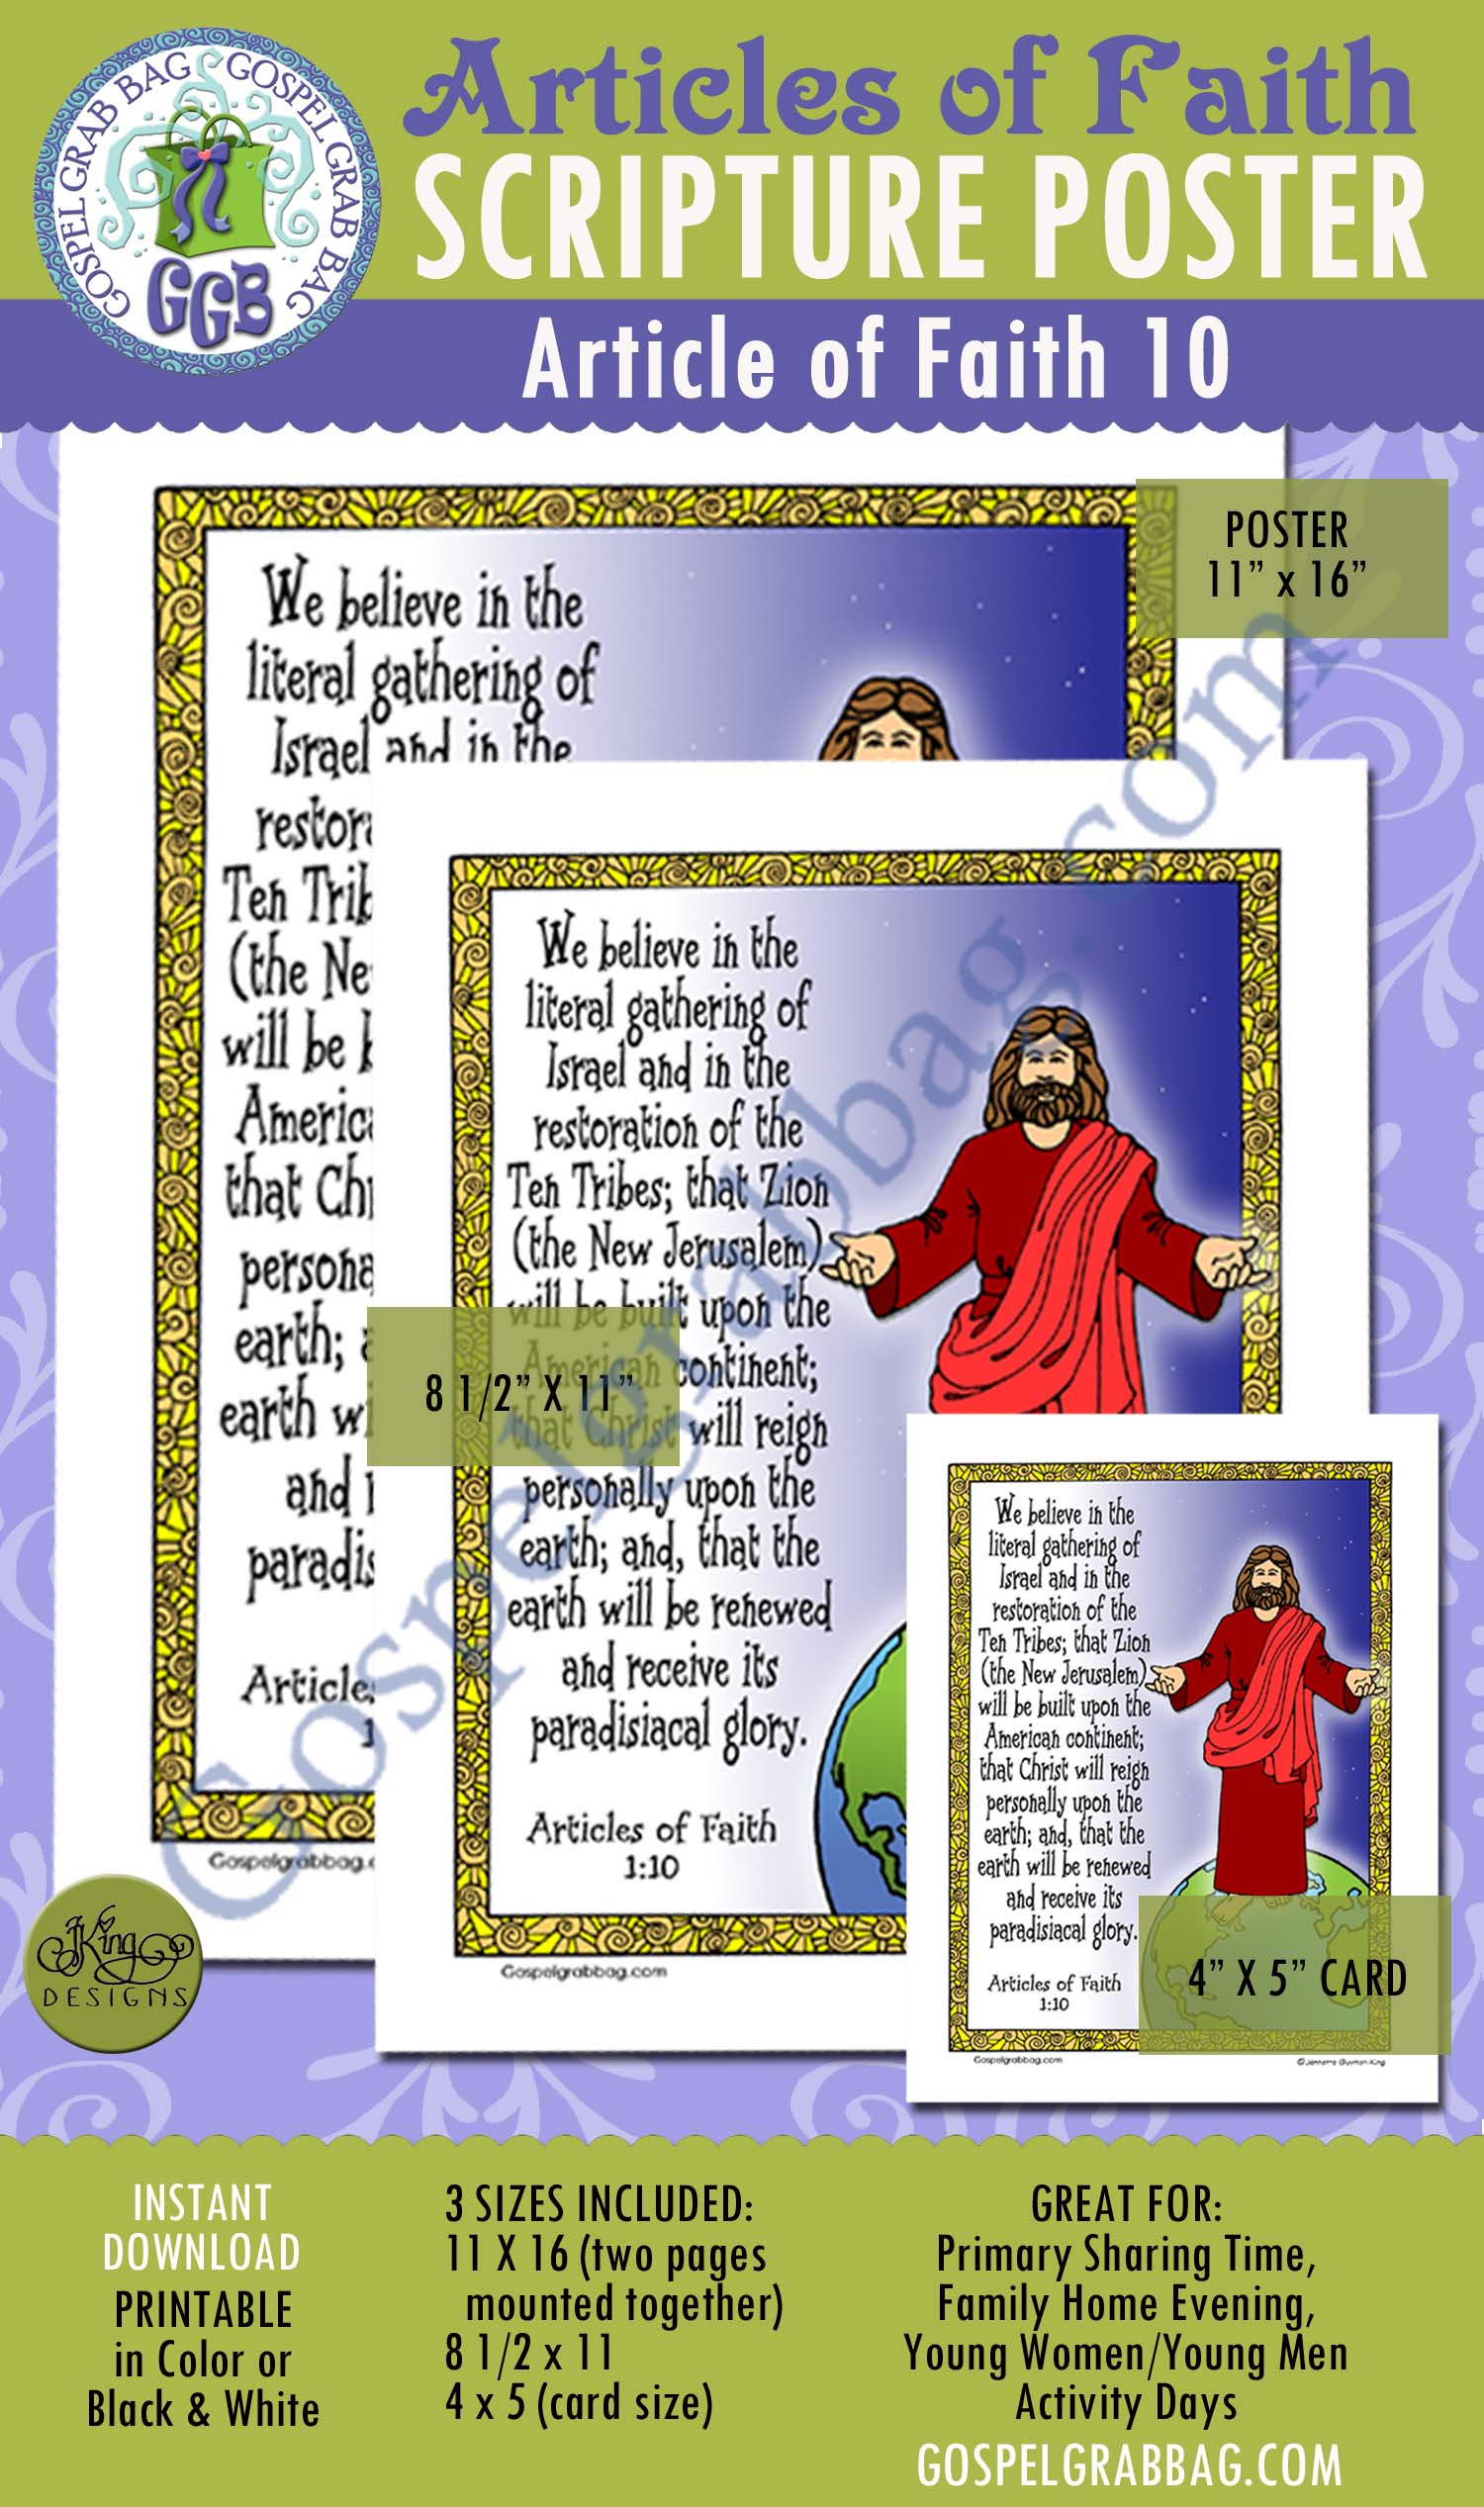 Second Coming Millennium Missionary Work Scripture Poster Articles Of Faith 1 10 Lds Lesson